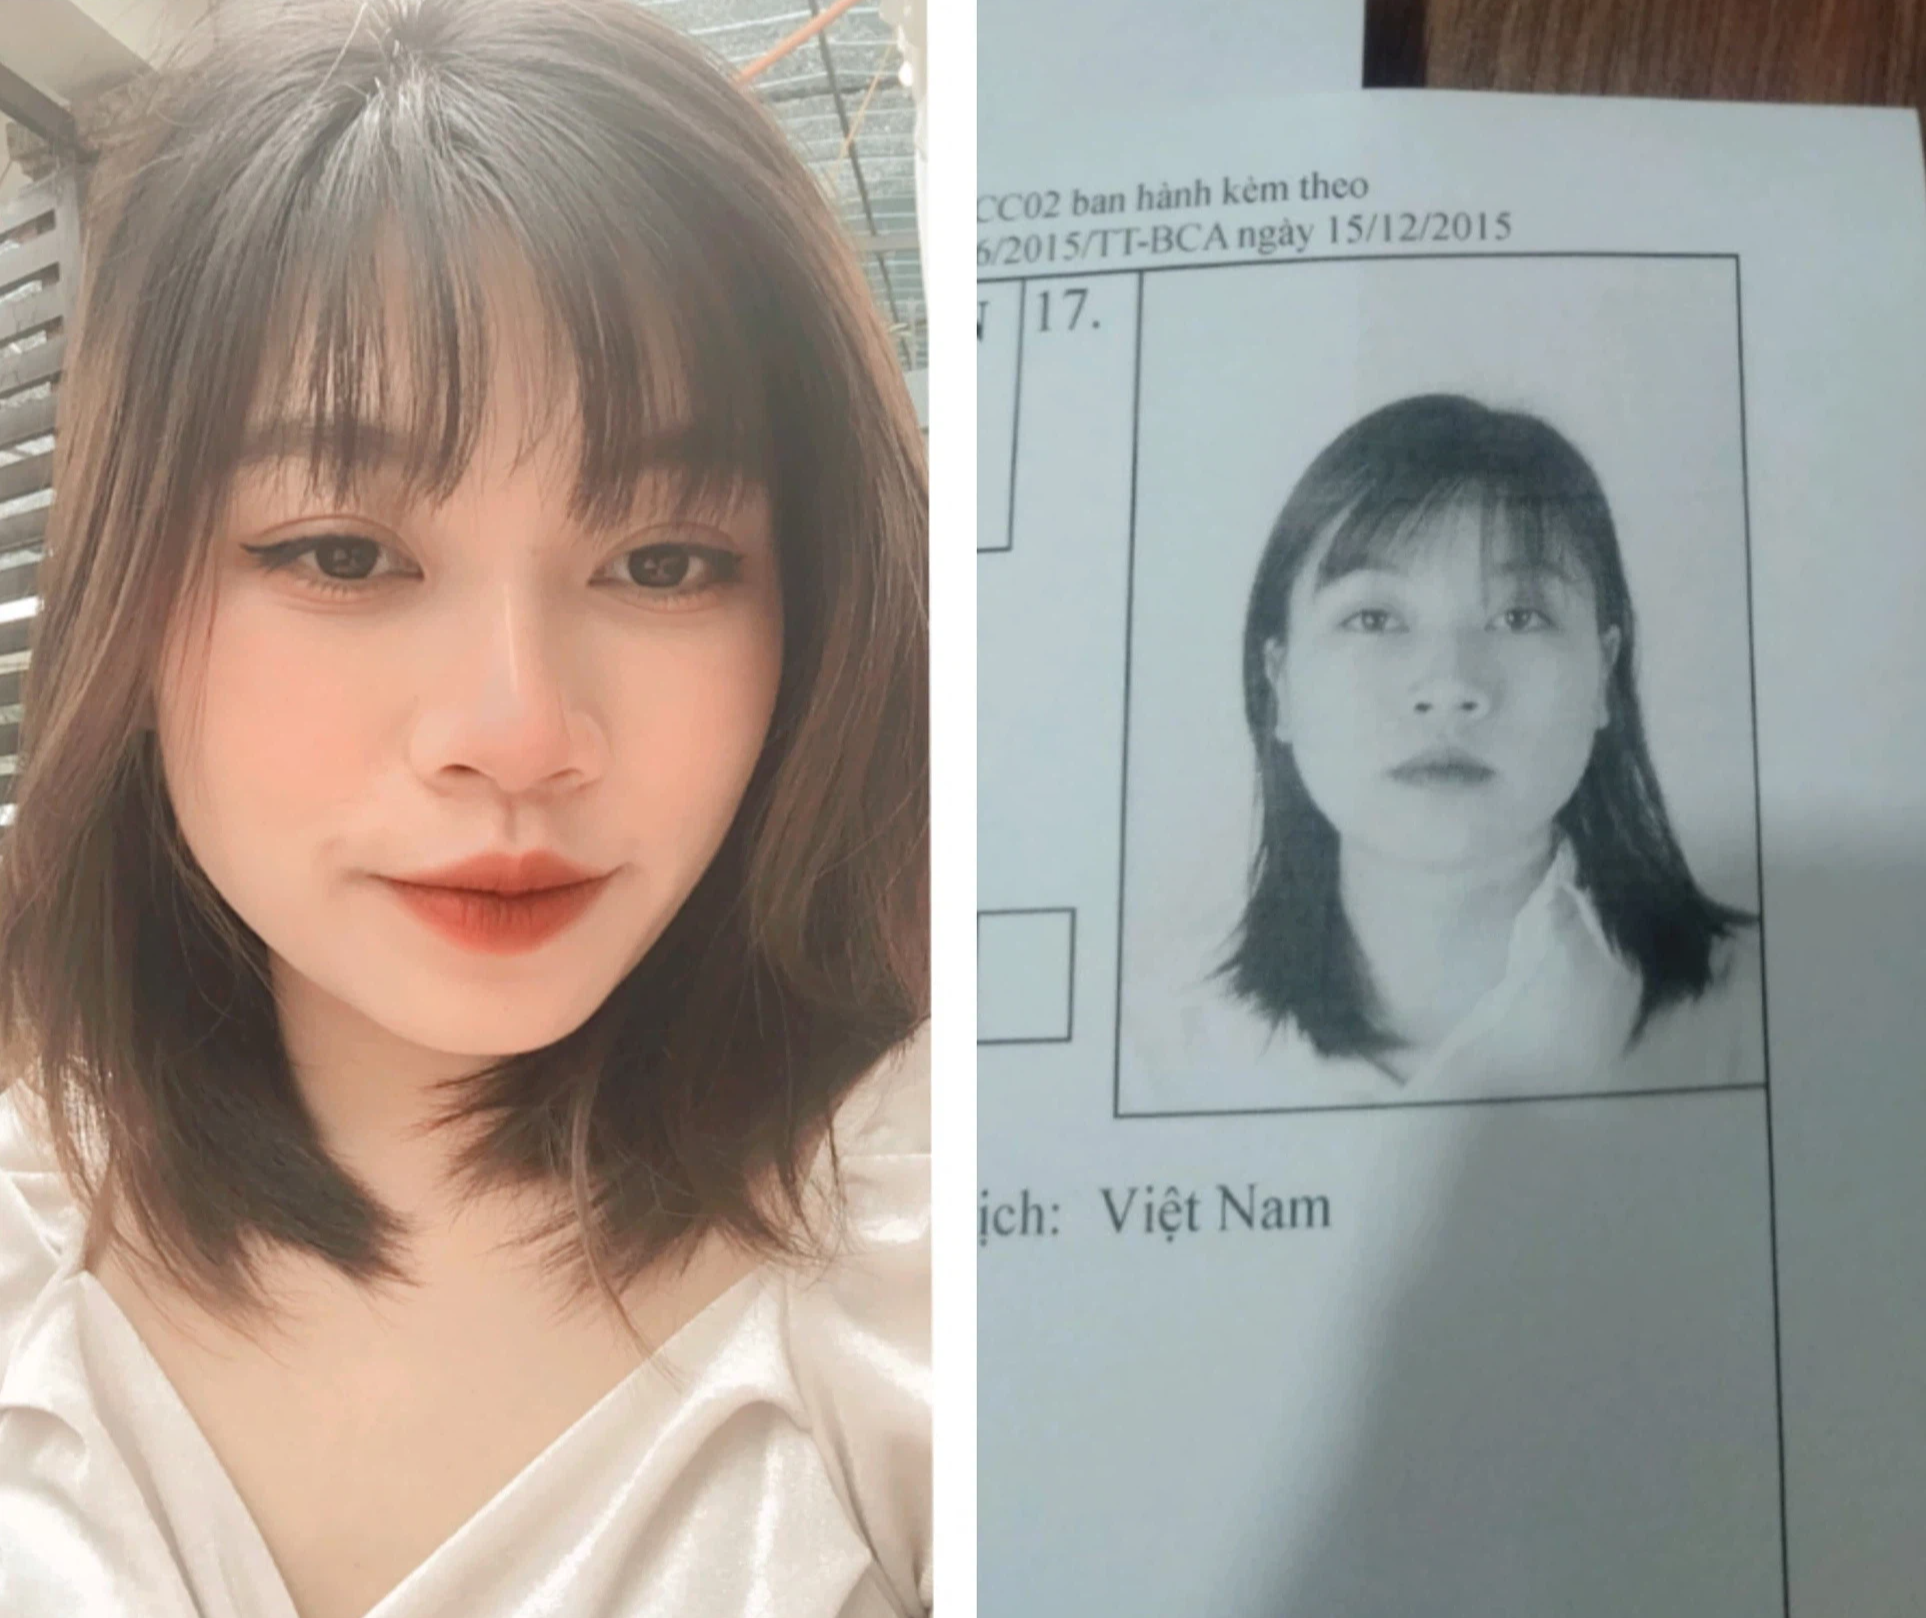 Network users cried and showed a photo of the identity of the new citizen: Sorry at the age of 15, the mistake has not been corrected yet - Photo 13.